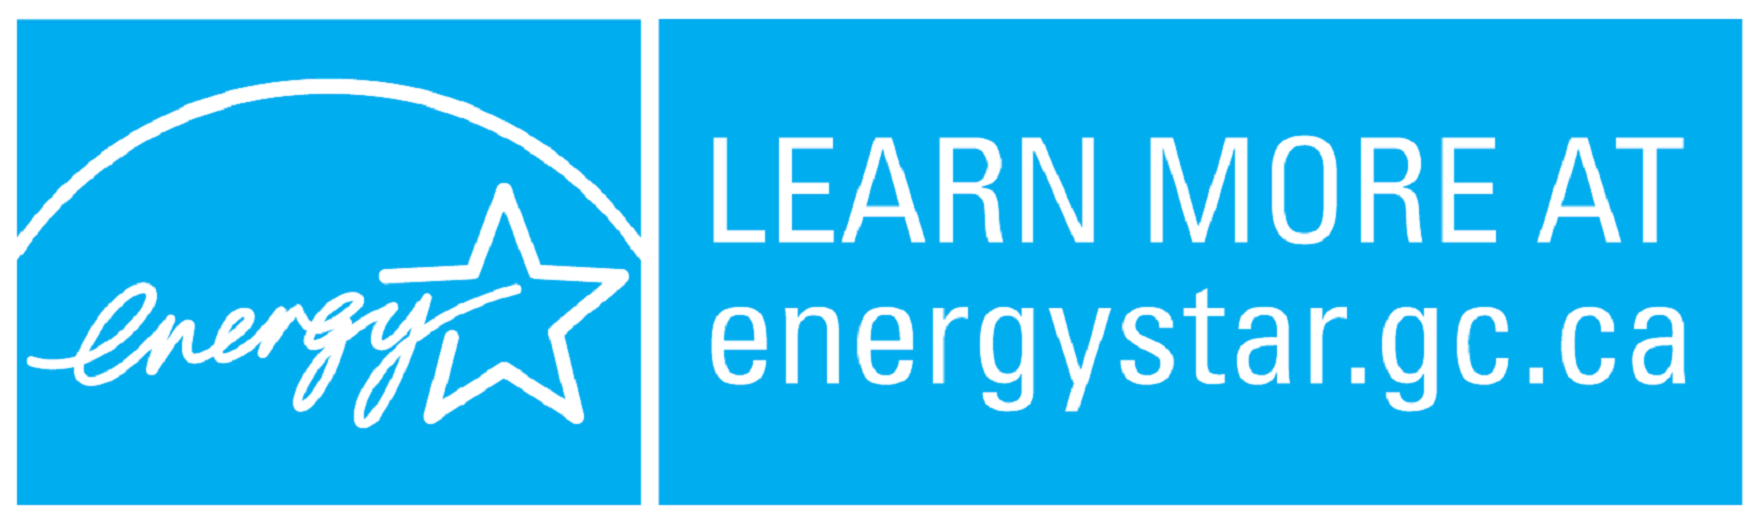 LEARN MORE AT energystar.gc.ca, horizontal cyan symbol